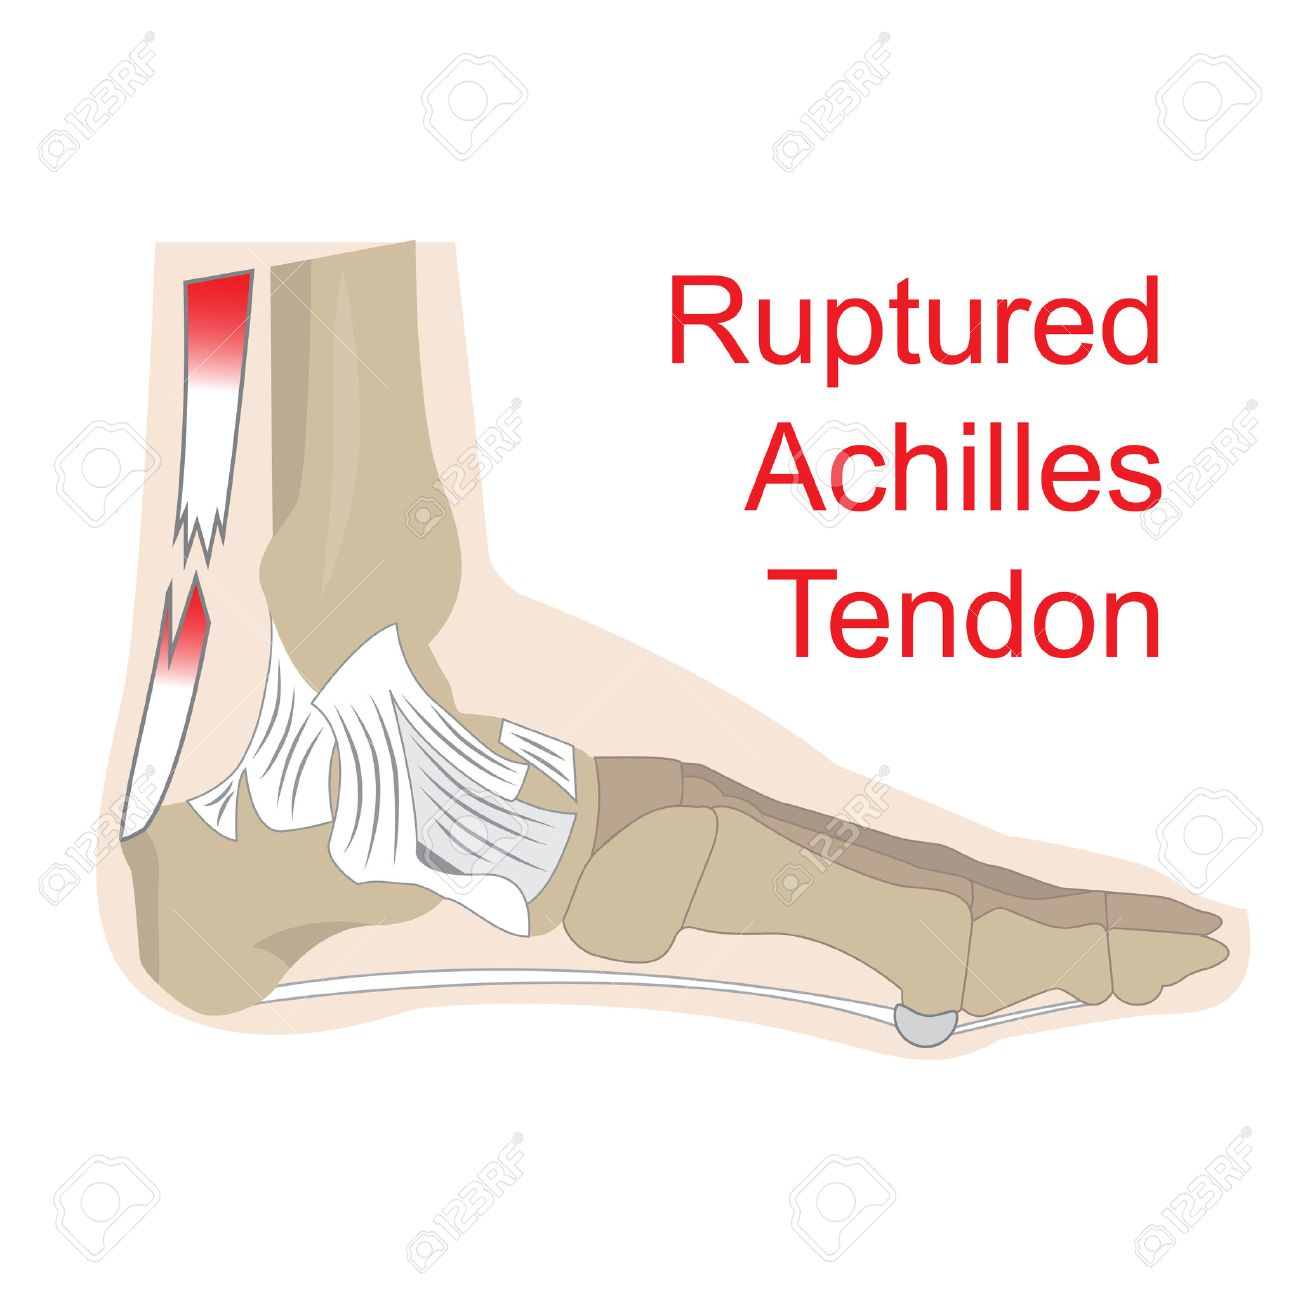 Vector Illustration Of Achilles Tendon Rupture Image Of Foot